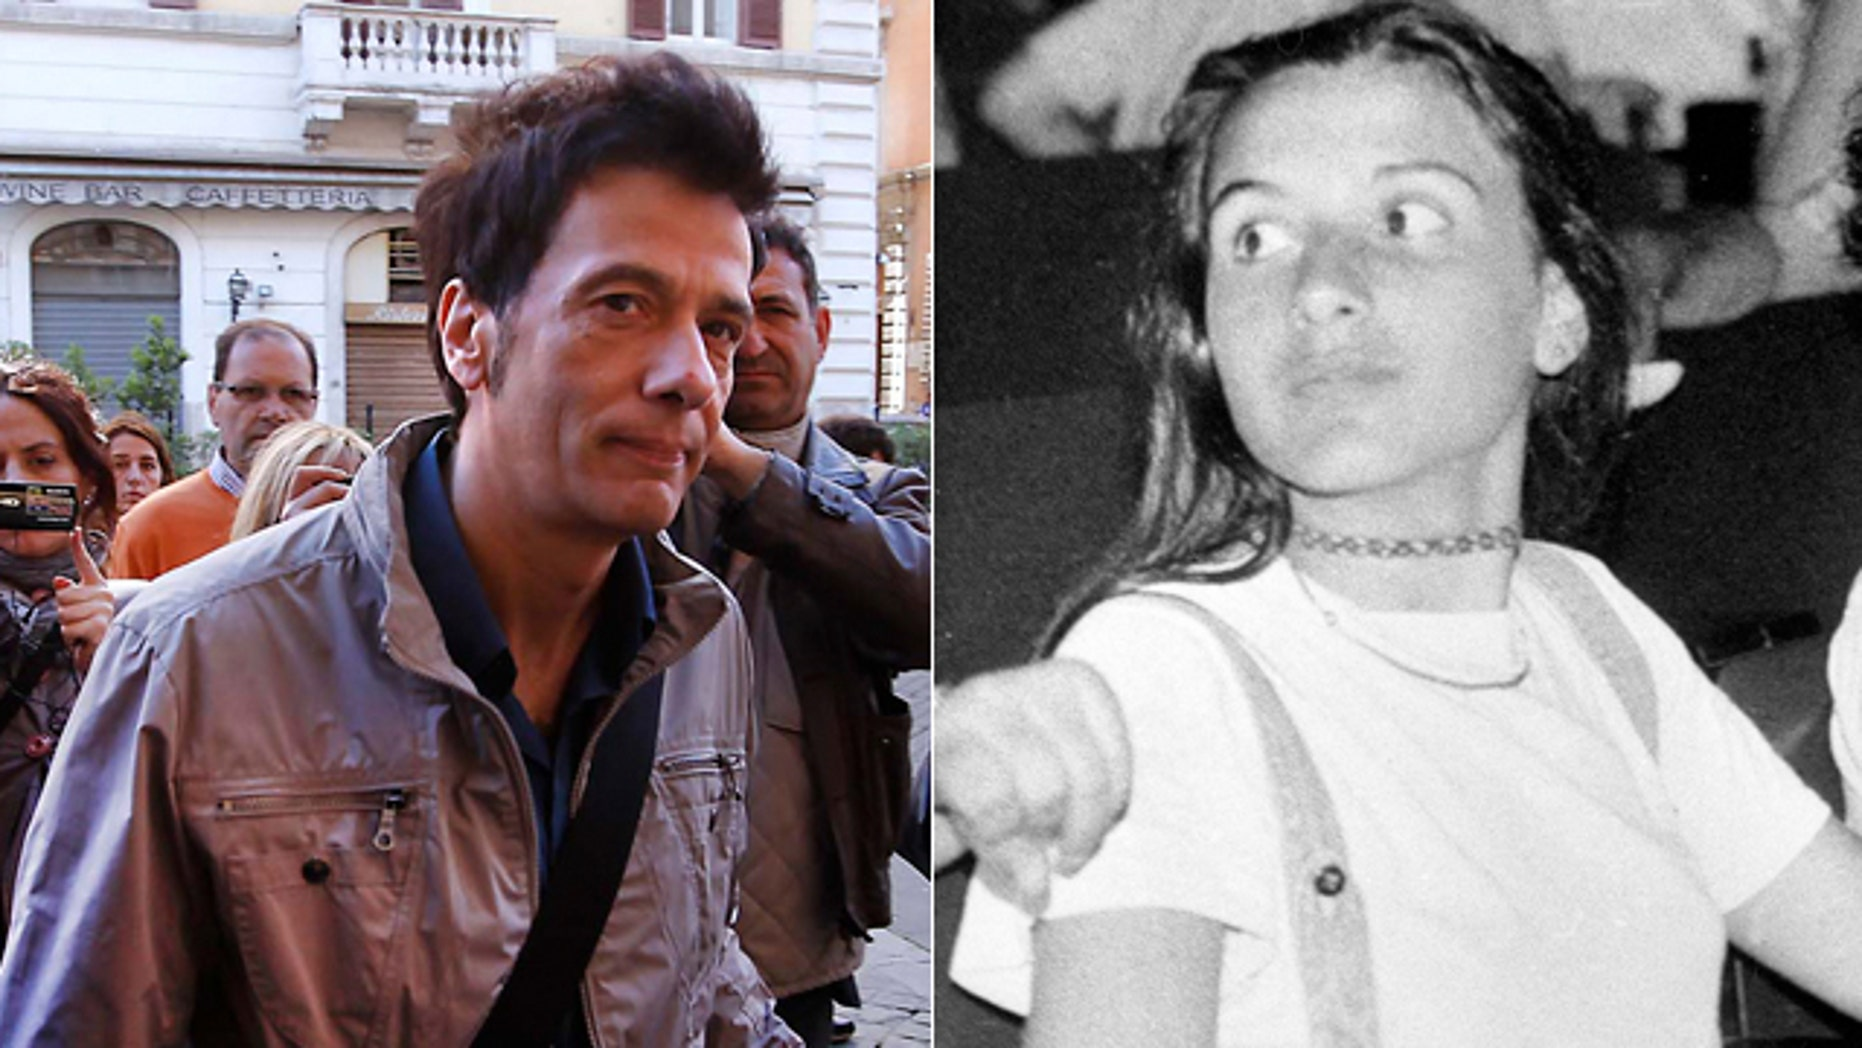 May 14: Pietro Orlandi, brother of missing girl Emanuela, arrives at Sant' Apollinare Basilica, in Rome.